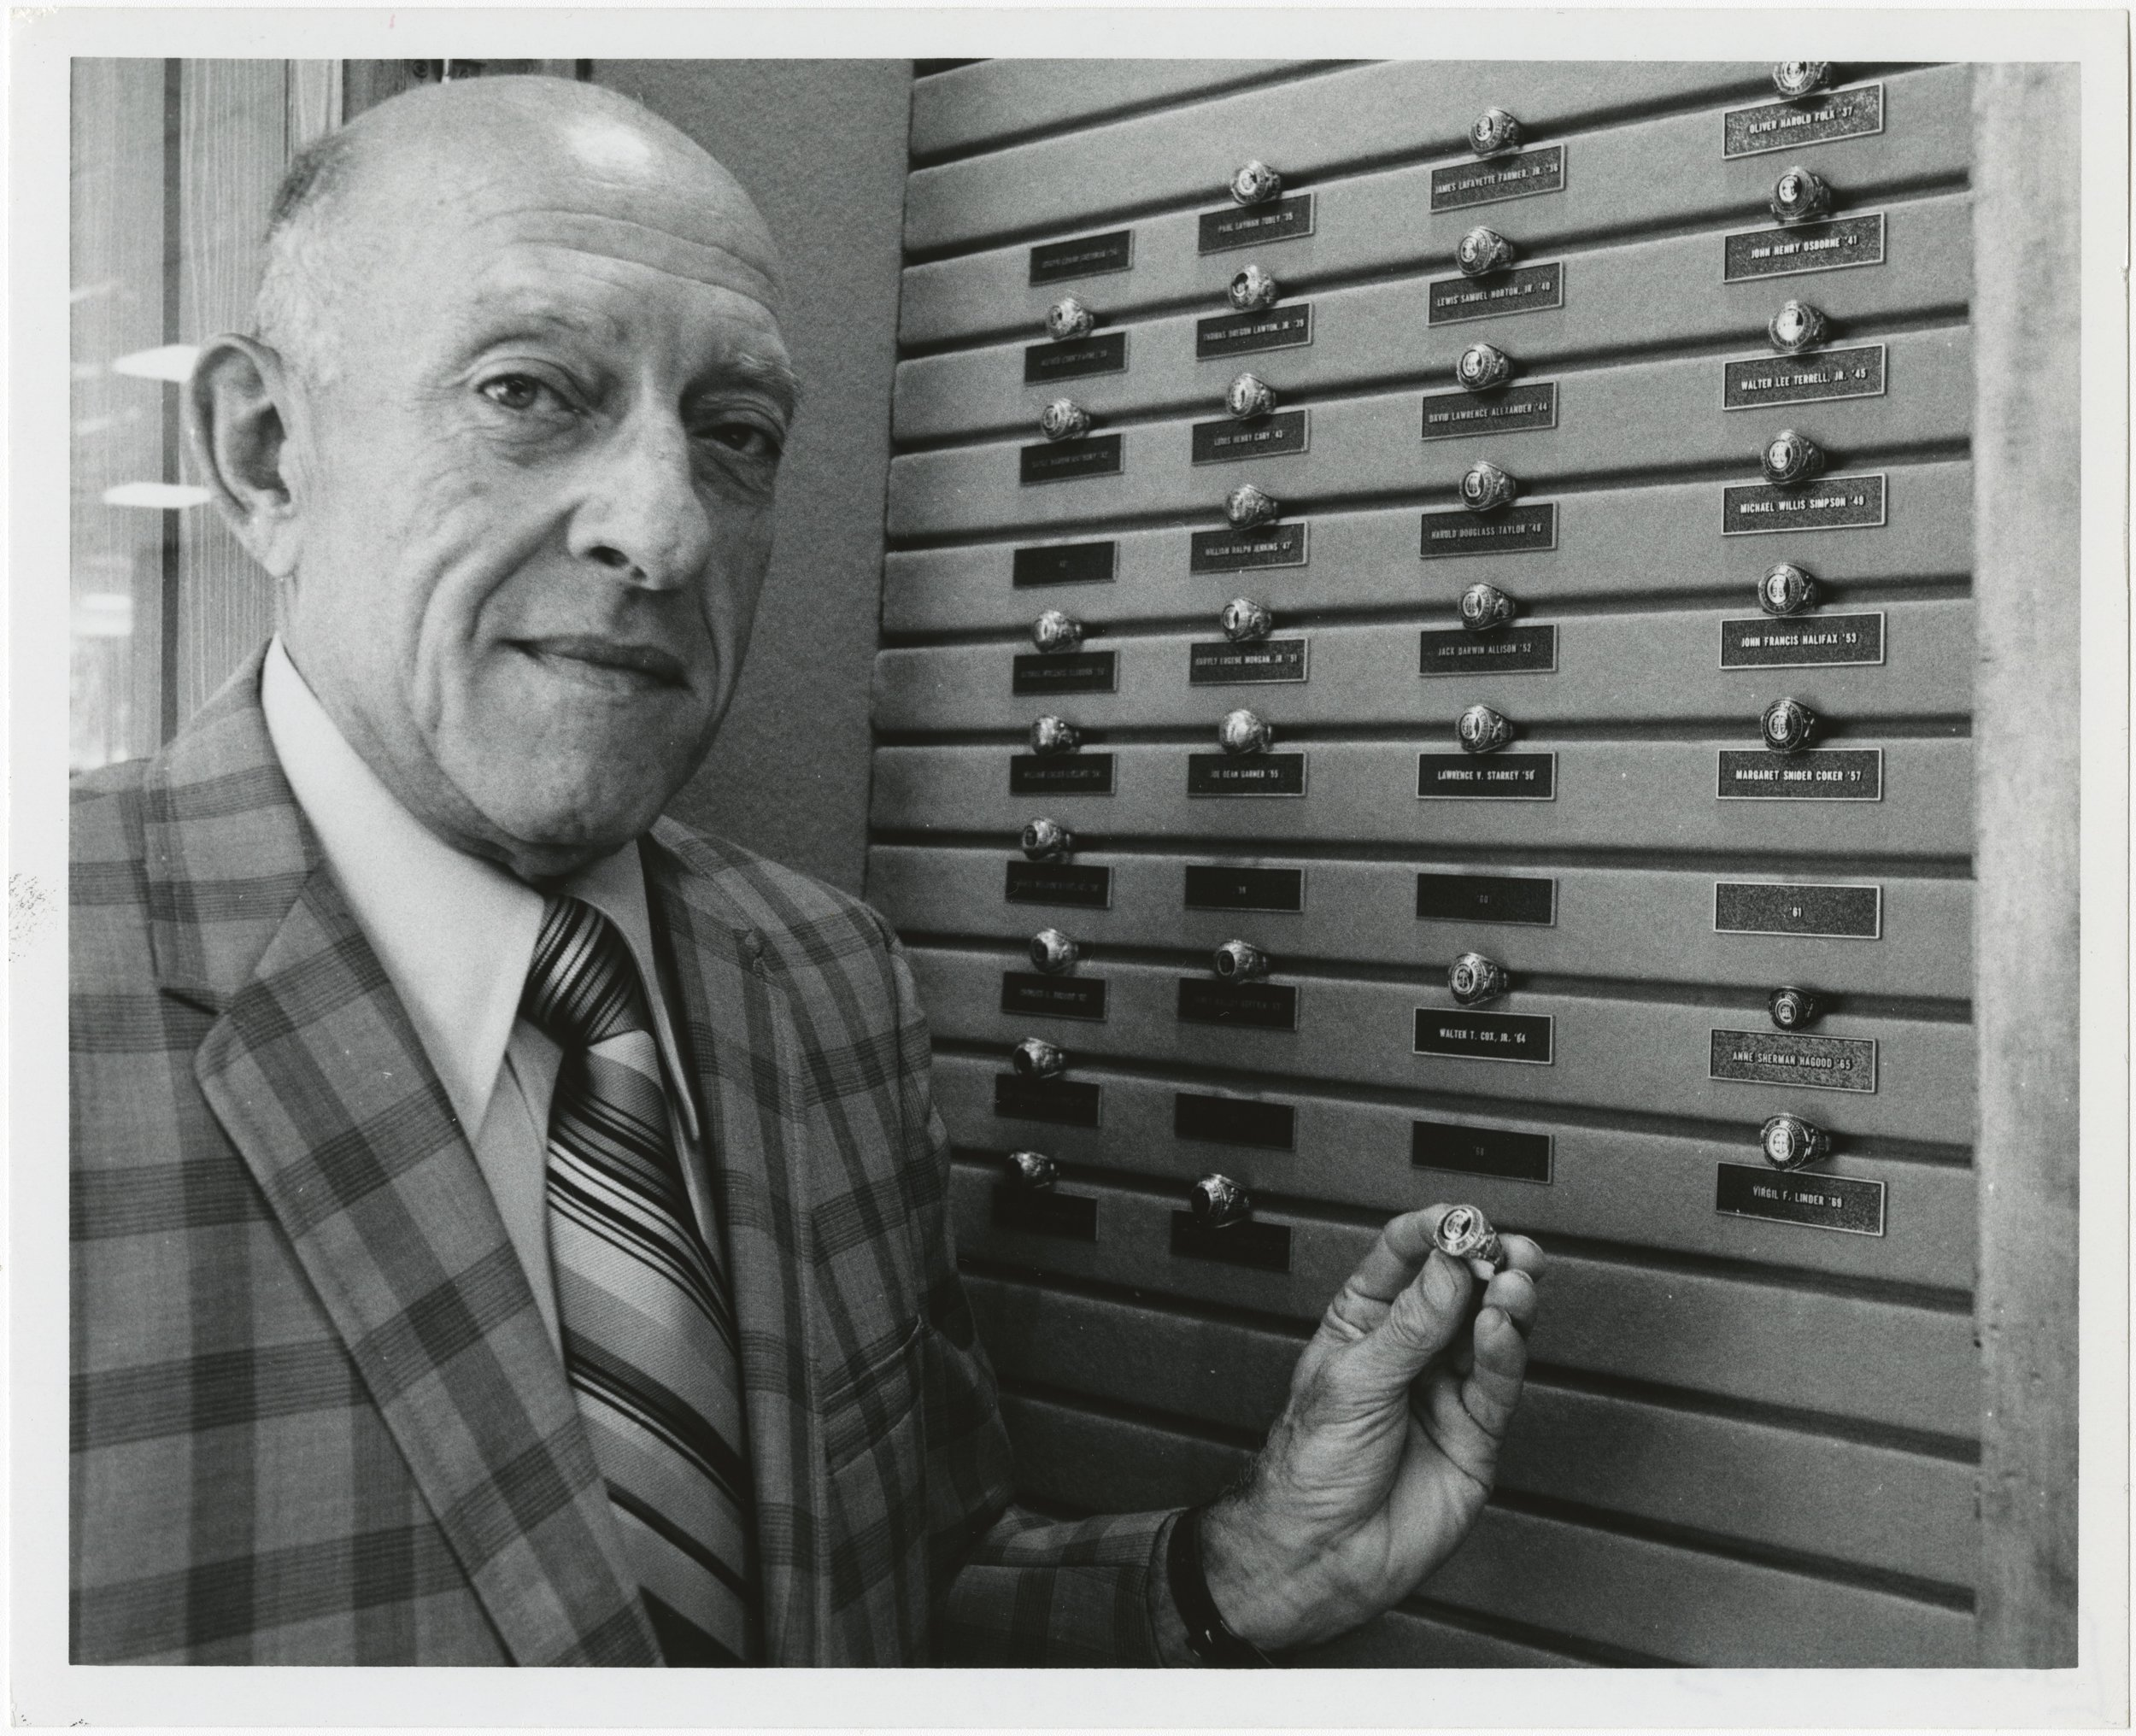 Joe Sherman at class ring collection in Alumni Center (1973)